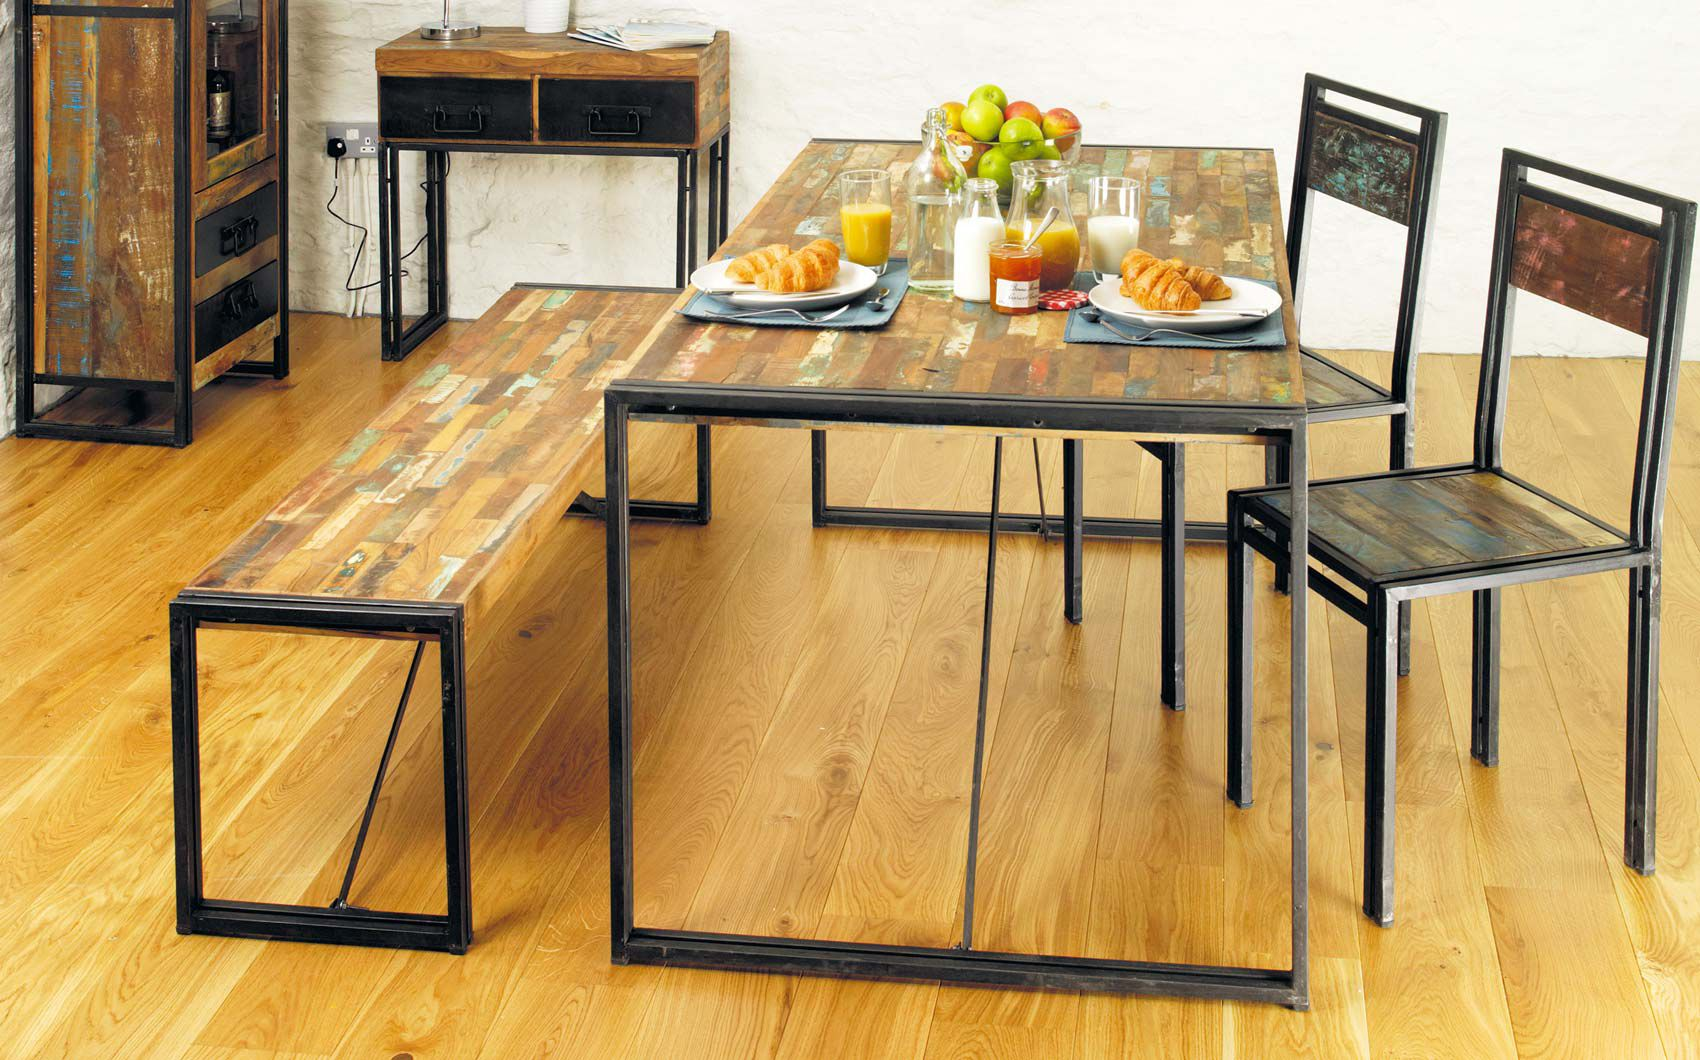 pipe desk shabby chic furniture and industrial chic on pinterest chic industrial furniture